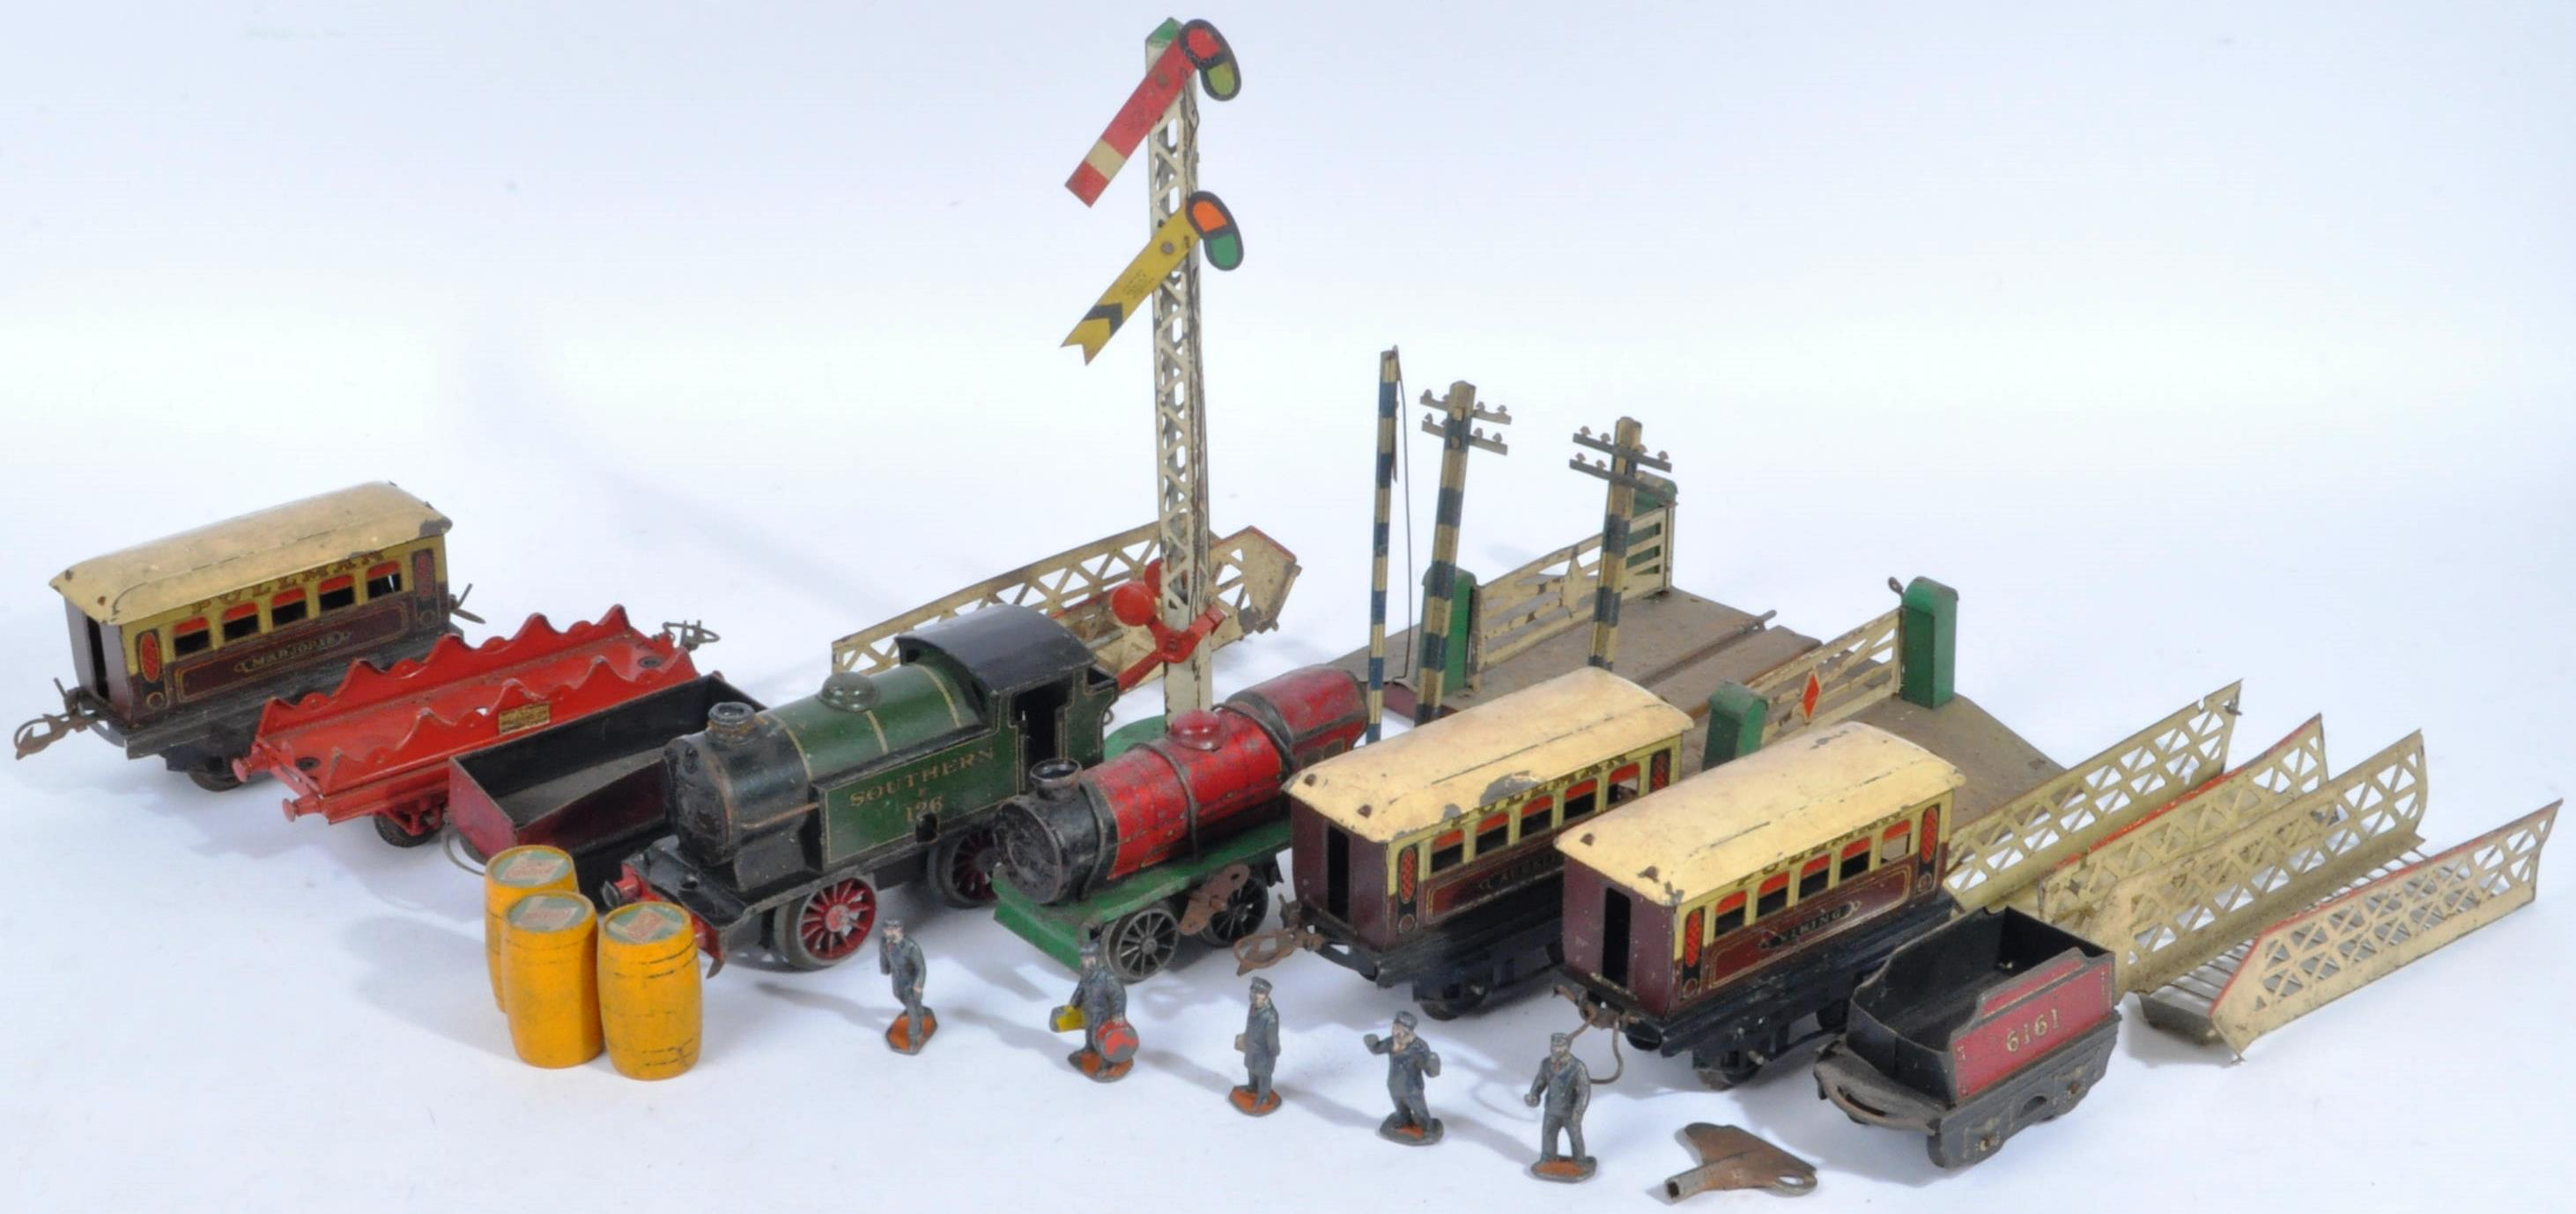 COLLECTION OF ASSORTED VINTAGE O GAUGE MODEL RAILWAY ITEMS